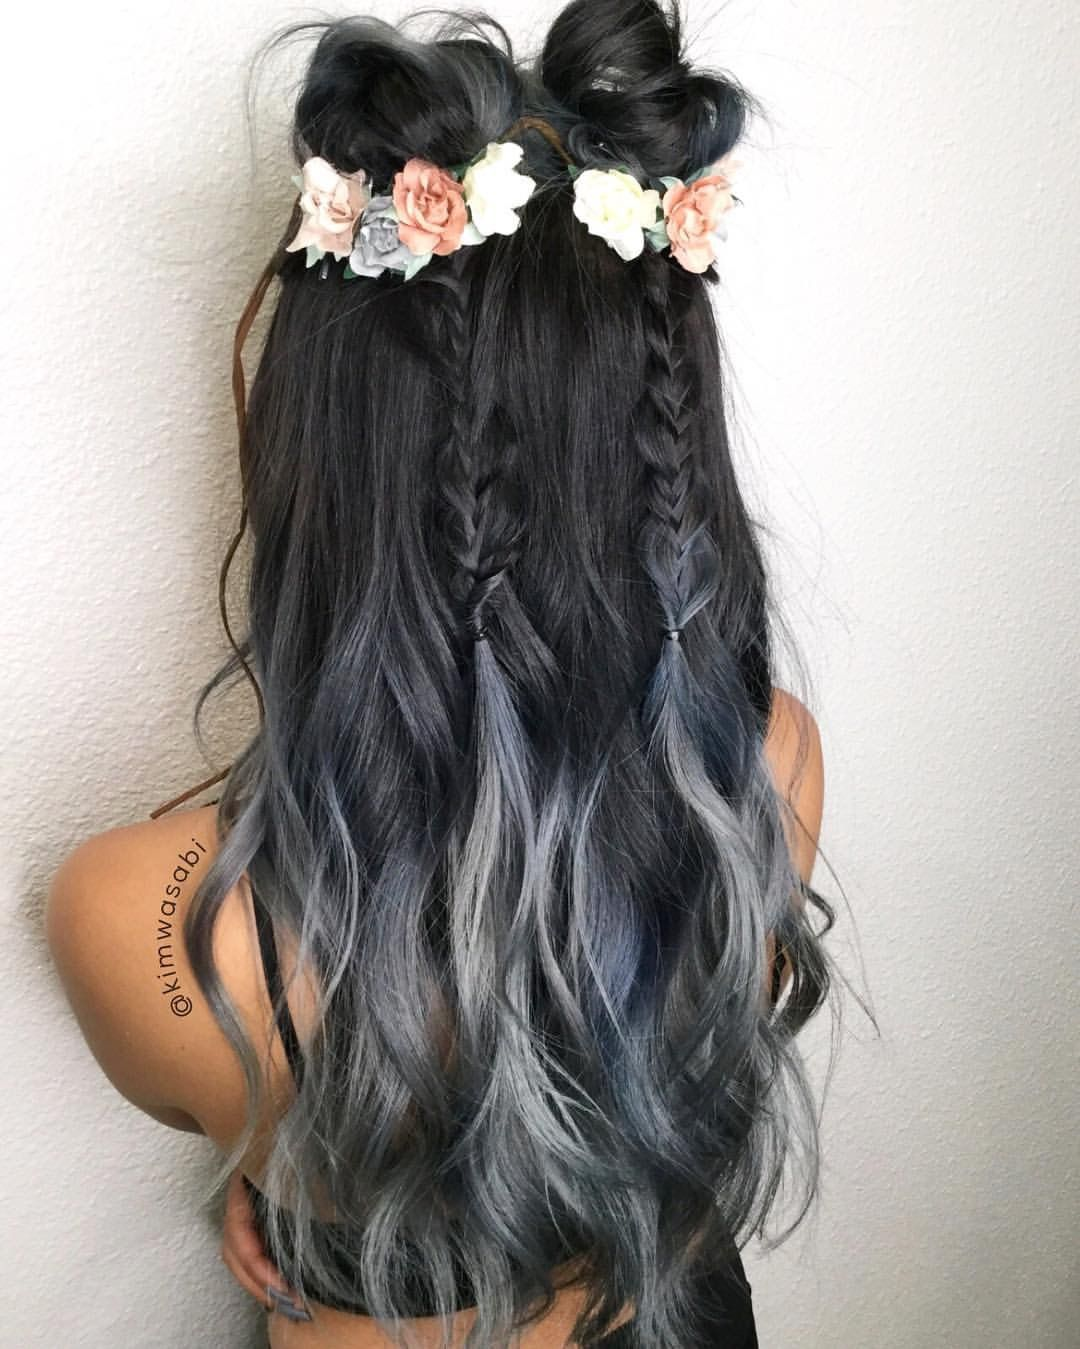 Festival Hairstyles Gorgeous Pinrachelle Delorme On H A I R  Pinterest  Hair Style Hair